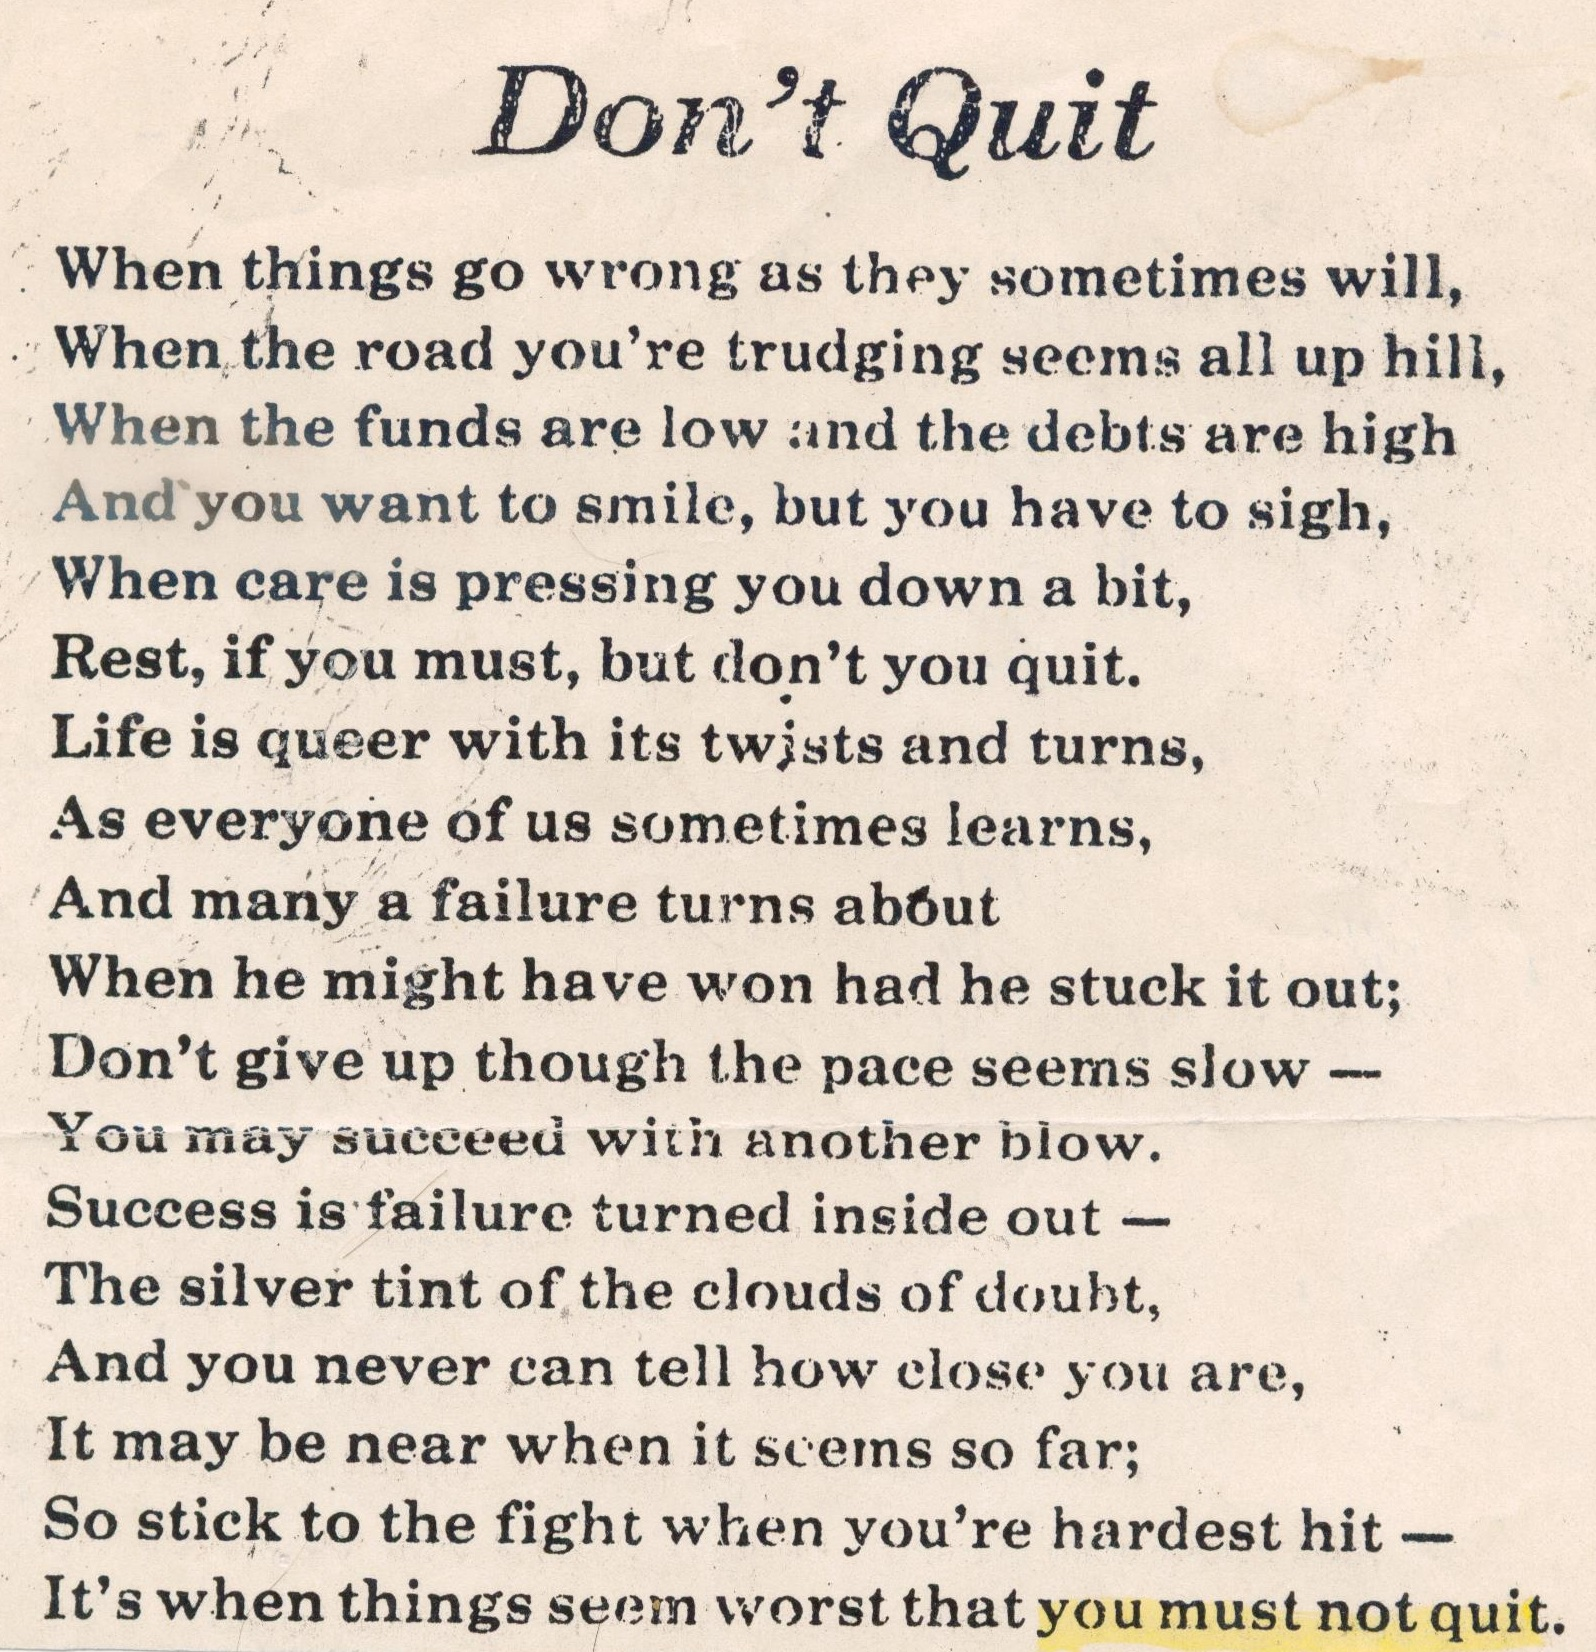 [IMAGE] Read this poem out loud when doubt hits